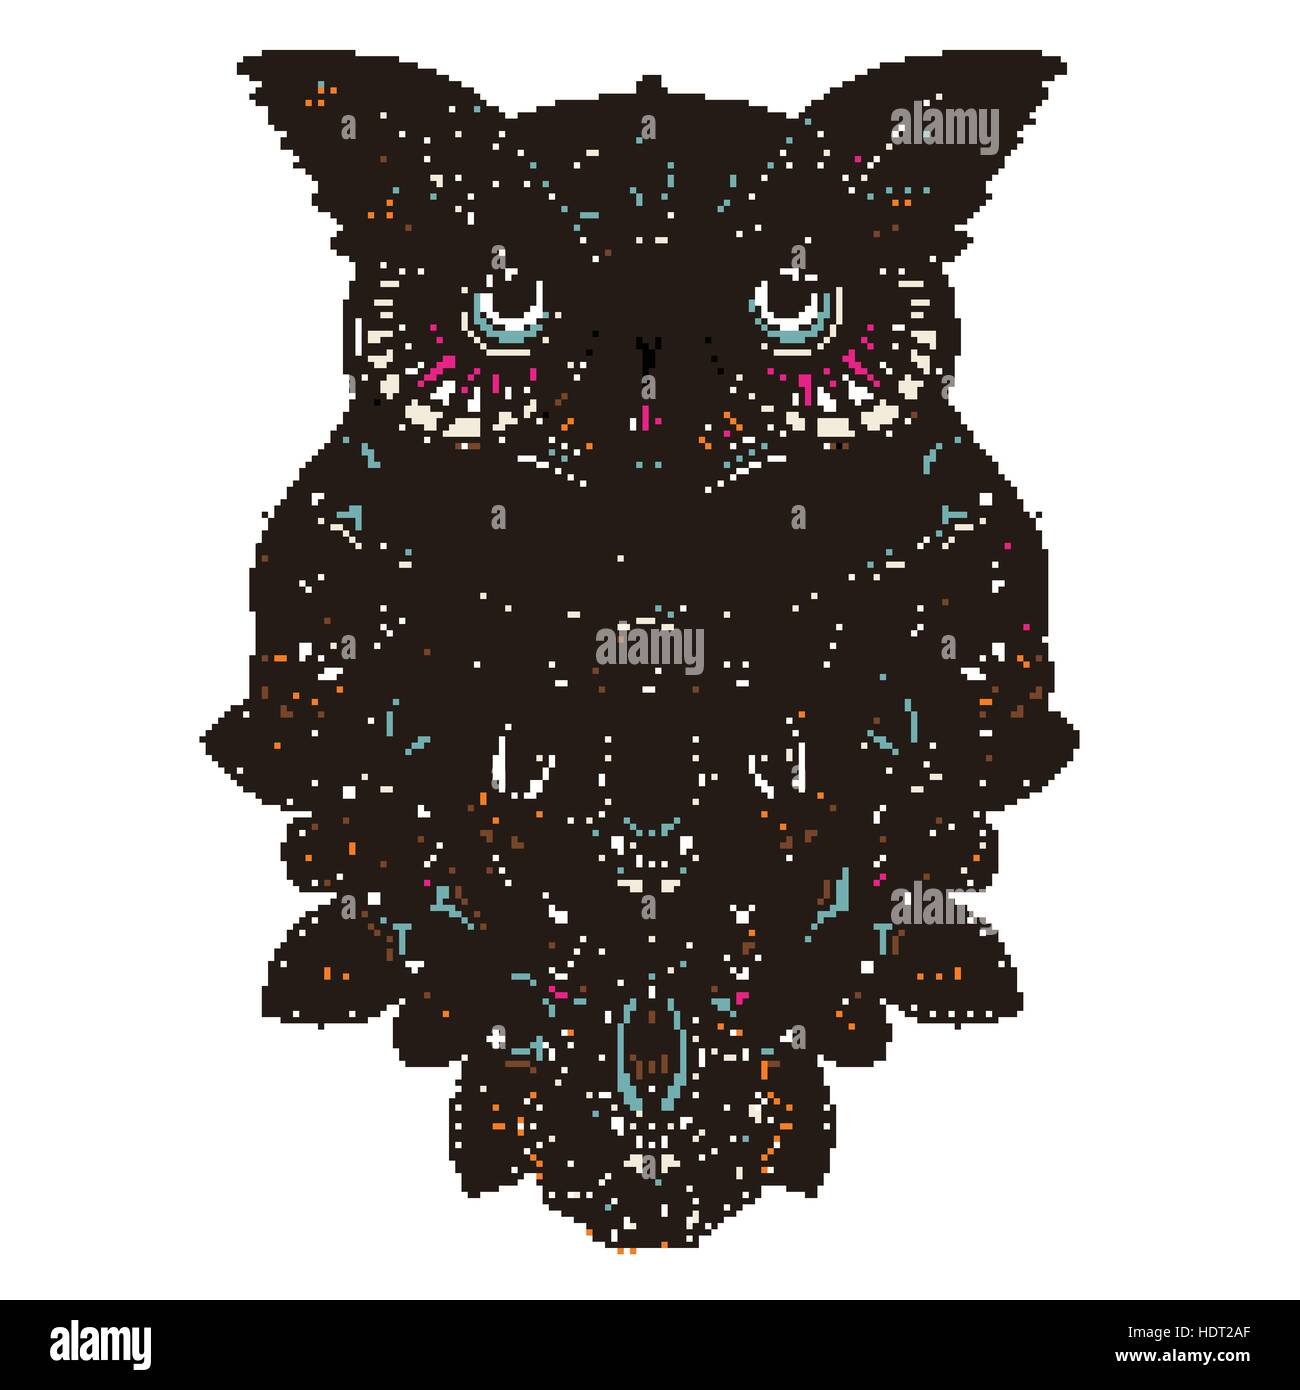 Owl Tattoo Stockfotos & Owl Tattoo Bilder - Seite 3 - Alamy